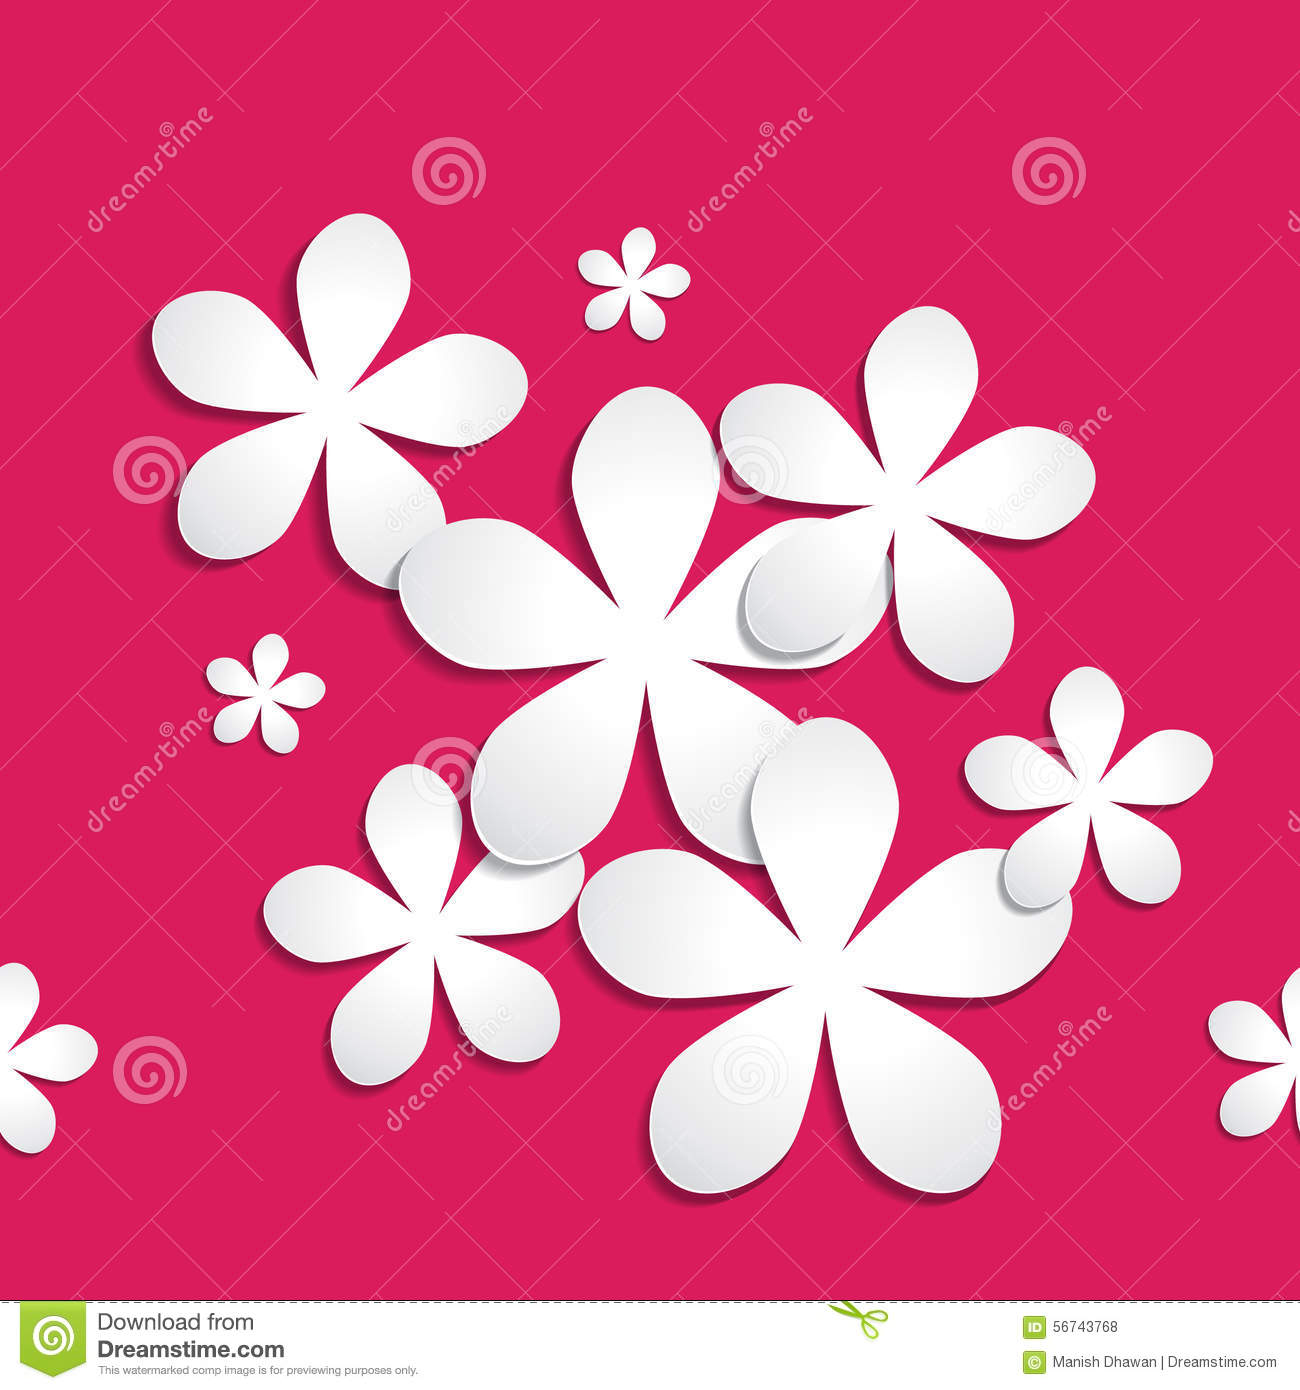 abstract 3d paper flower pattern on pink red background stock vector